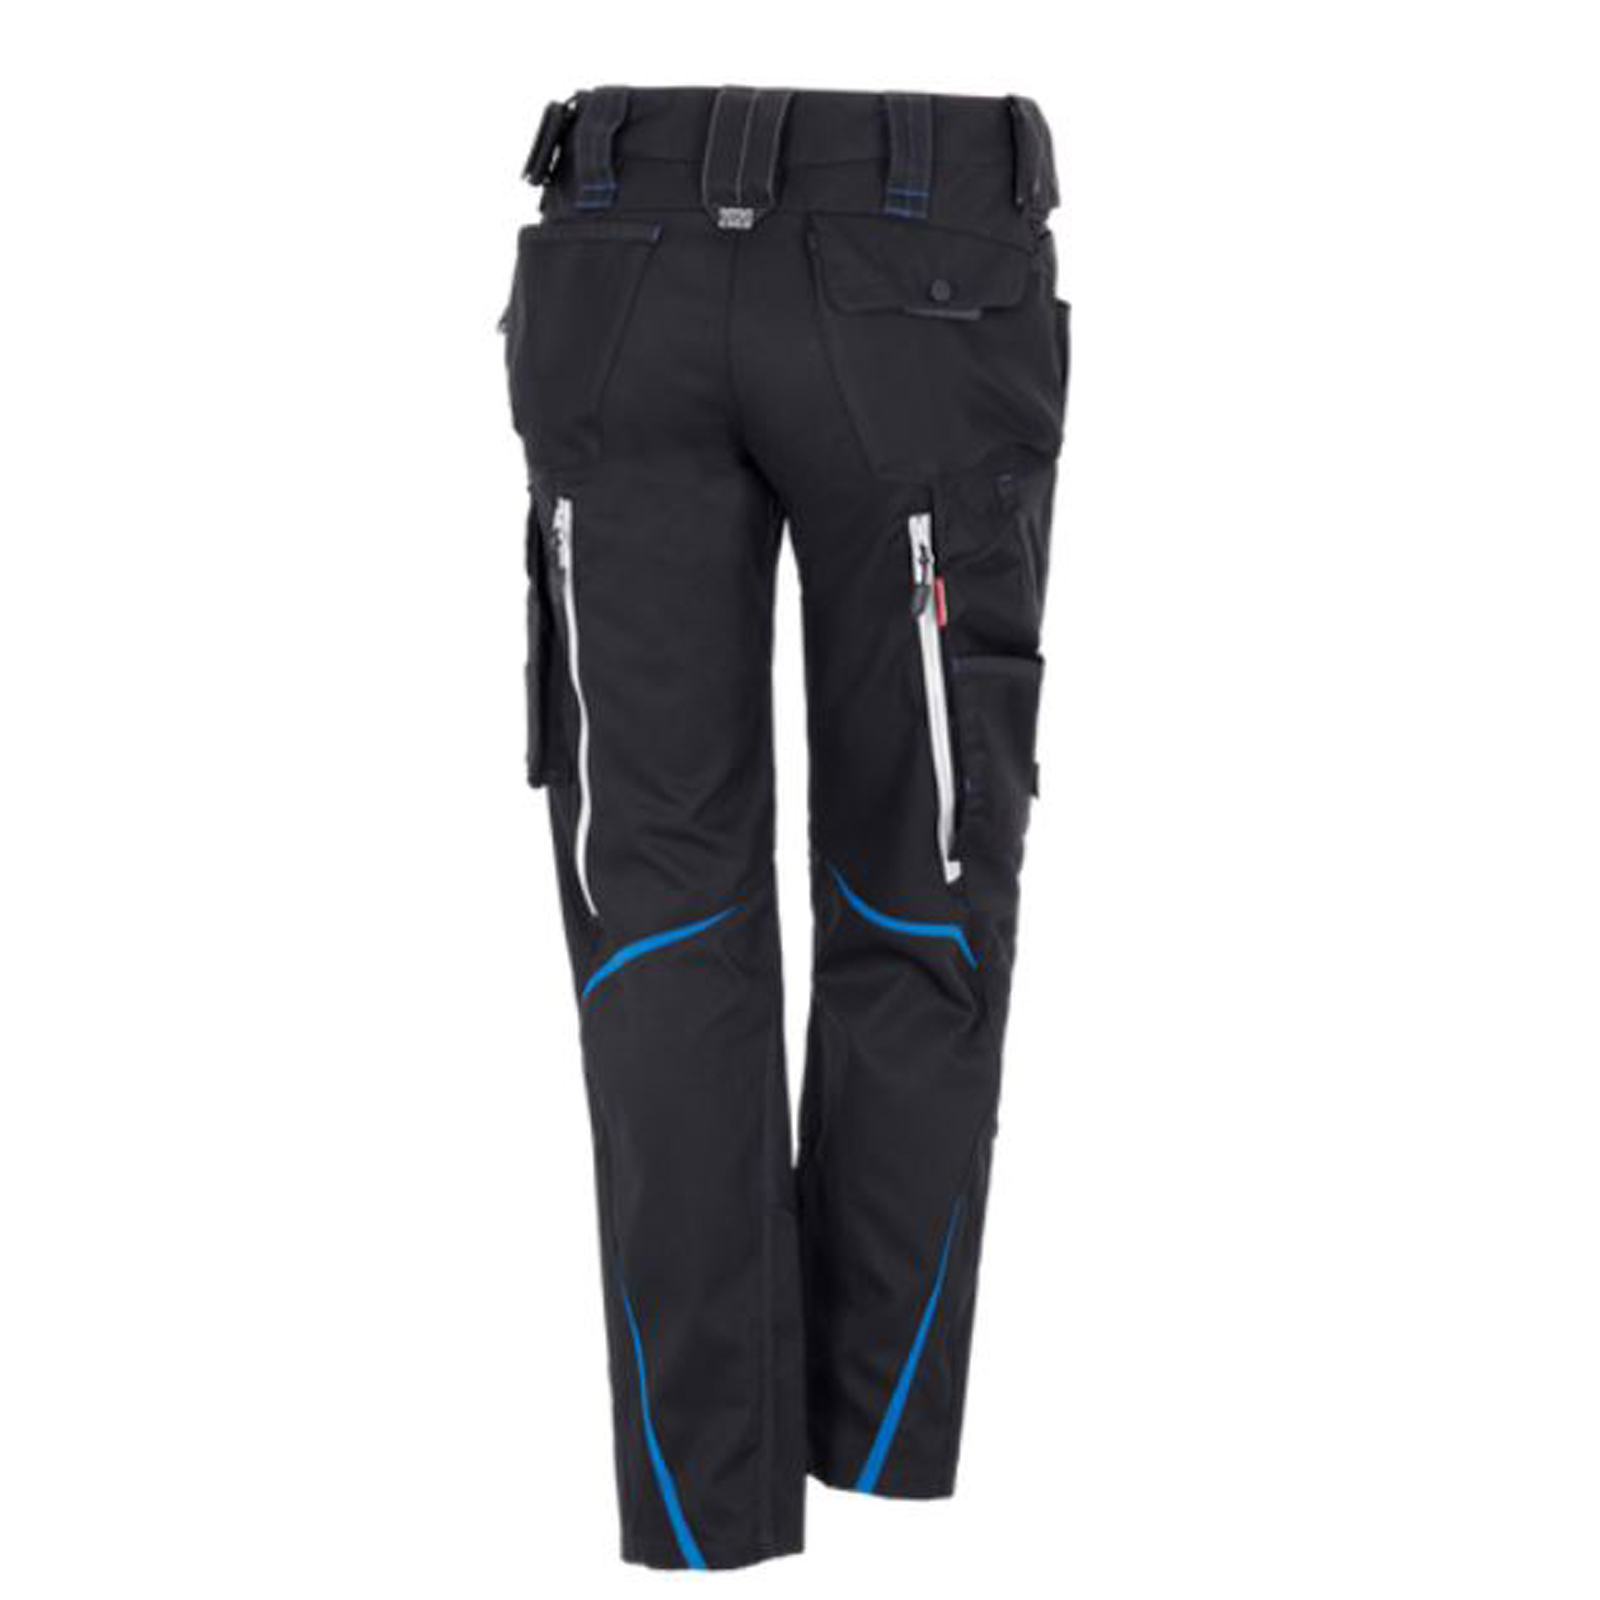 Engelbert Strauss Ladies Trousers E S Motion 2020